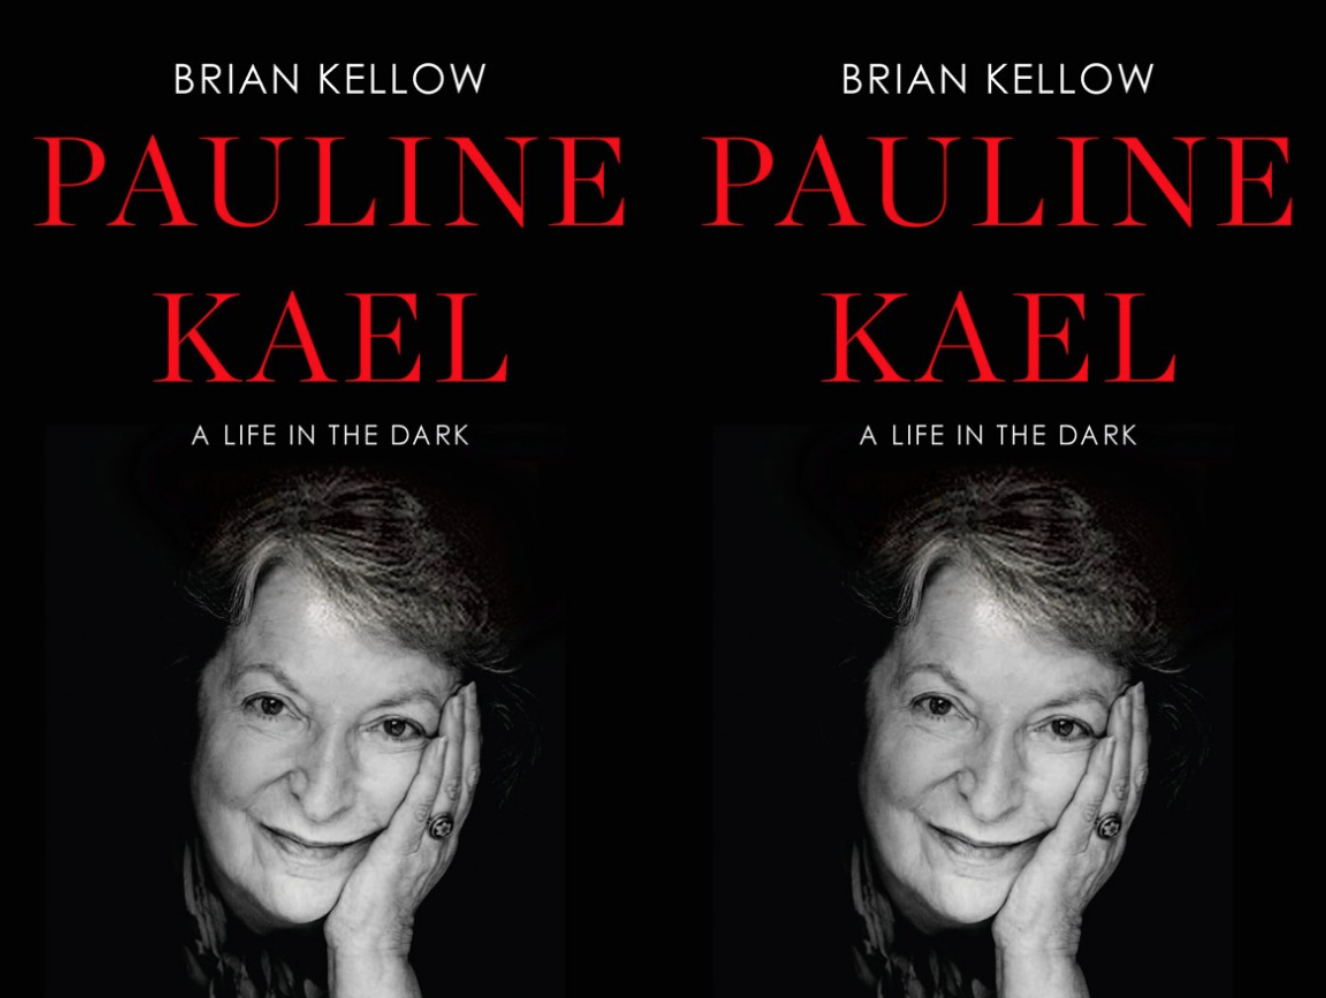 Cover art for A Life in the Dark by Pauline Kael